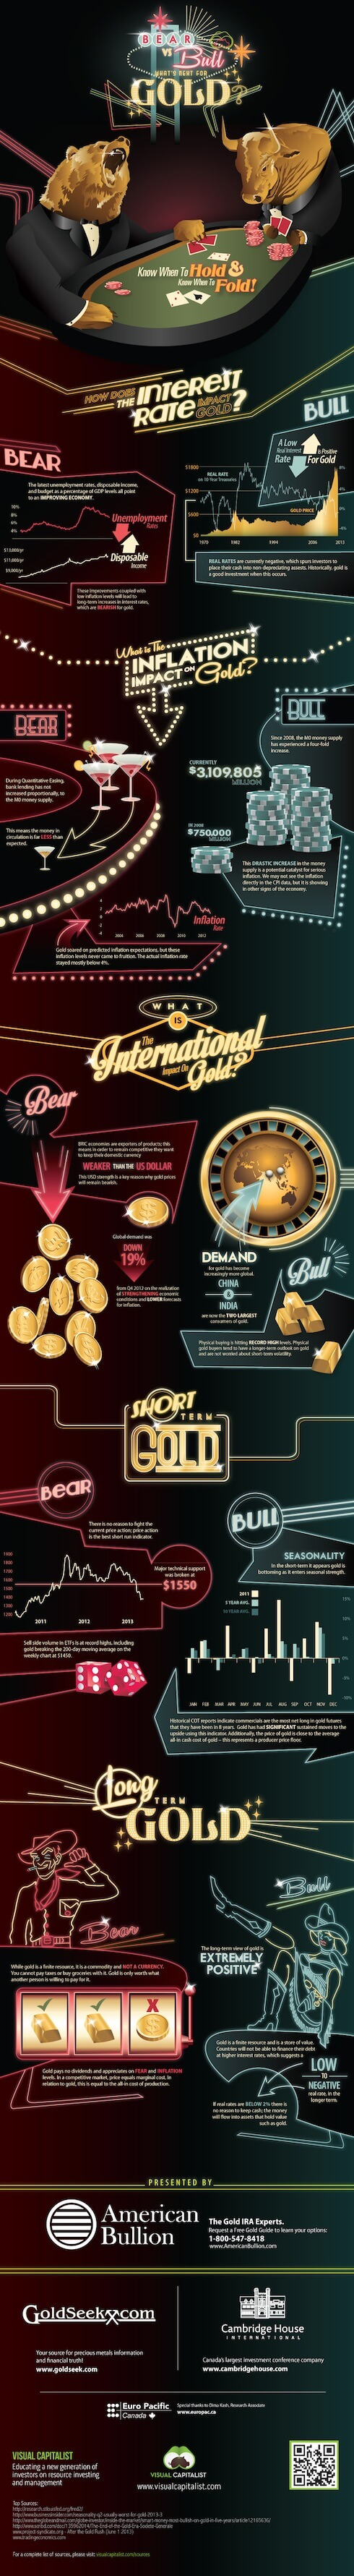 What's next for gold?